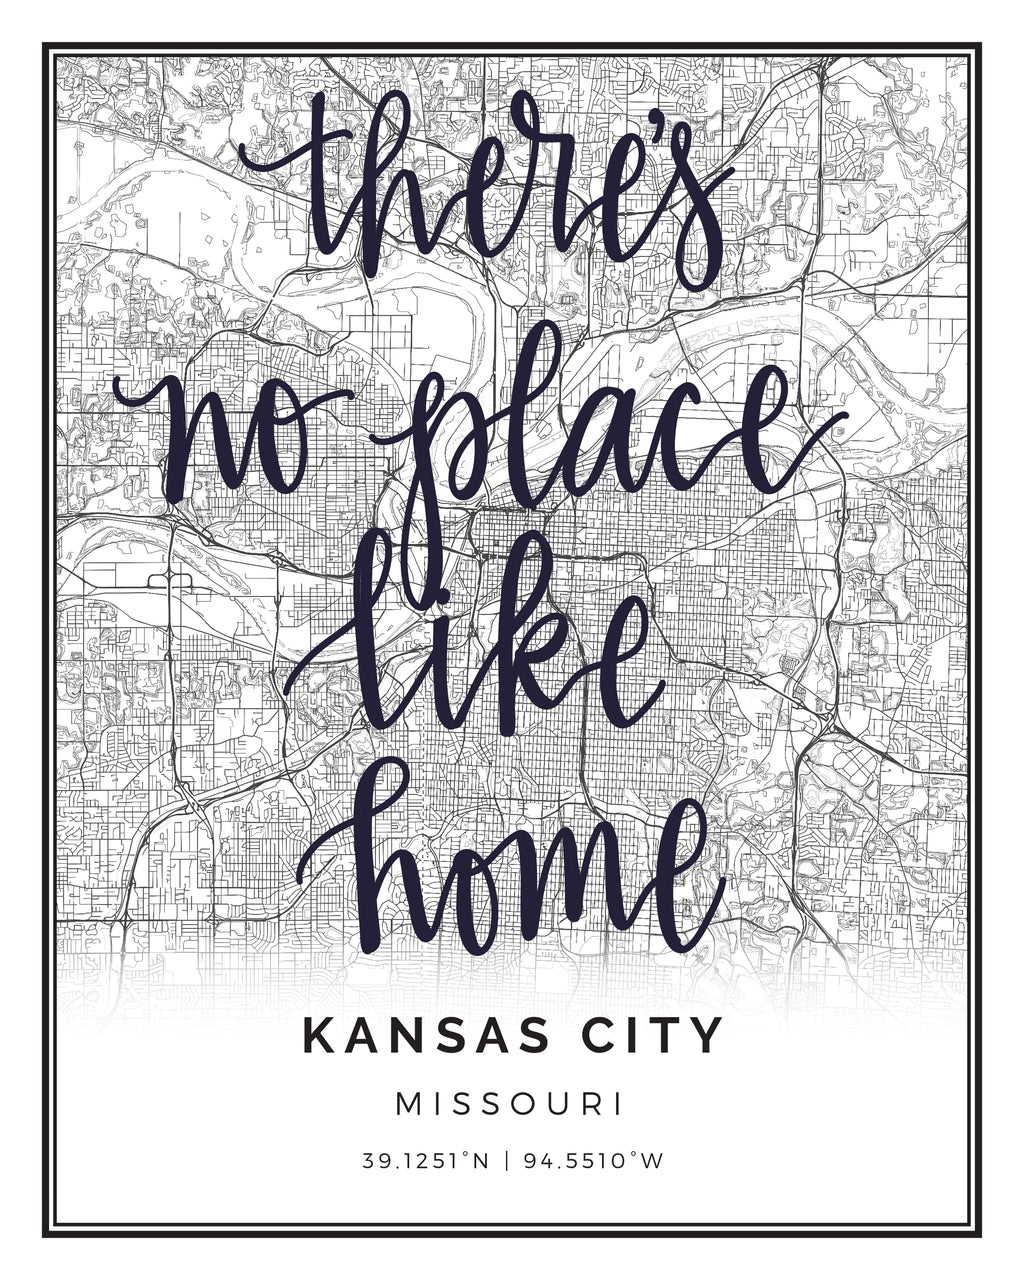 KANSAS CITY, MO BLACK & WHITE CITY PRINT